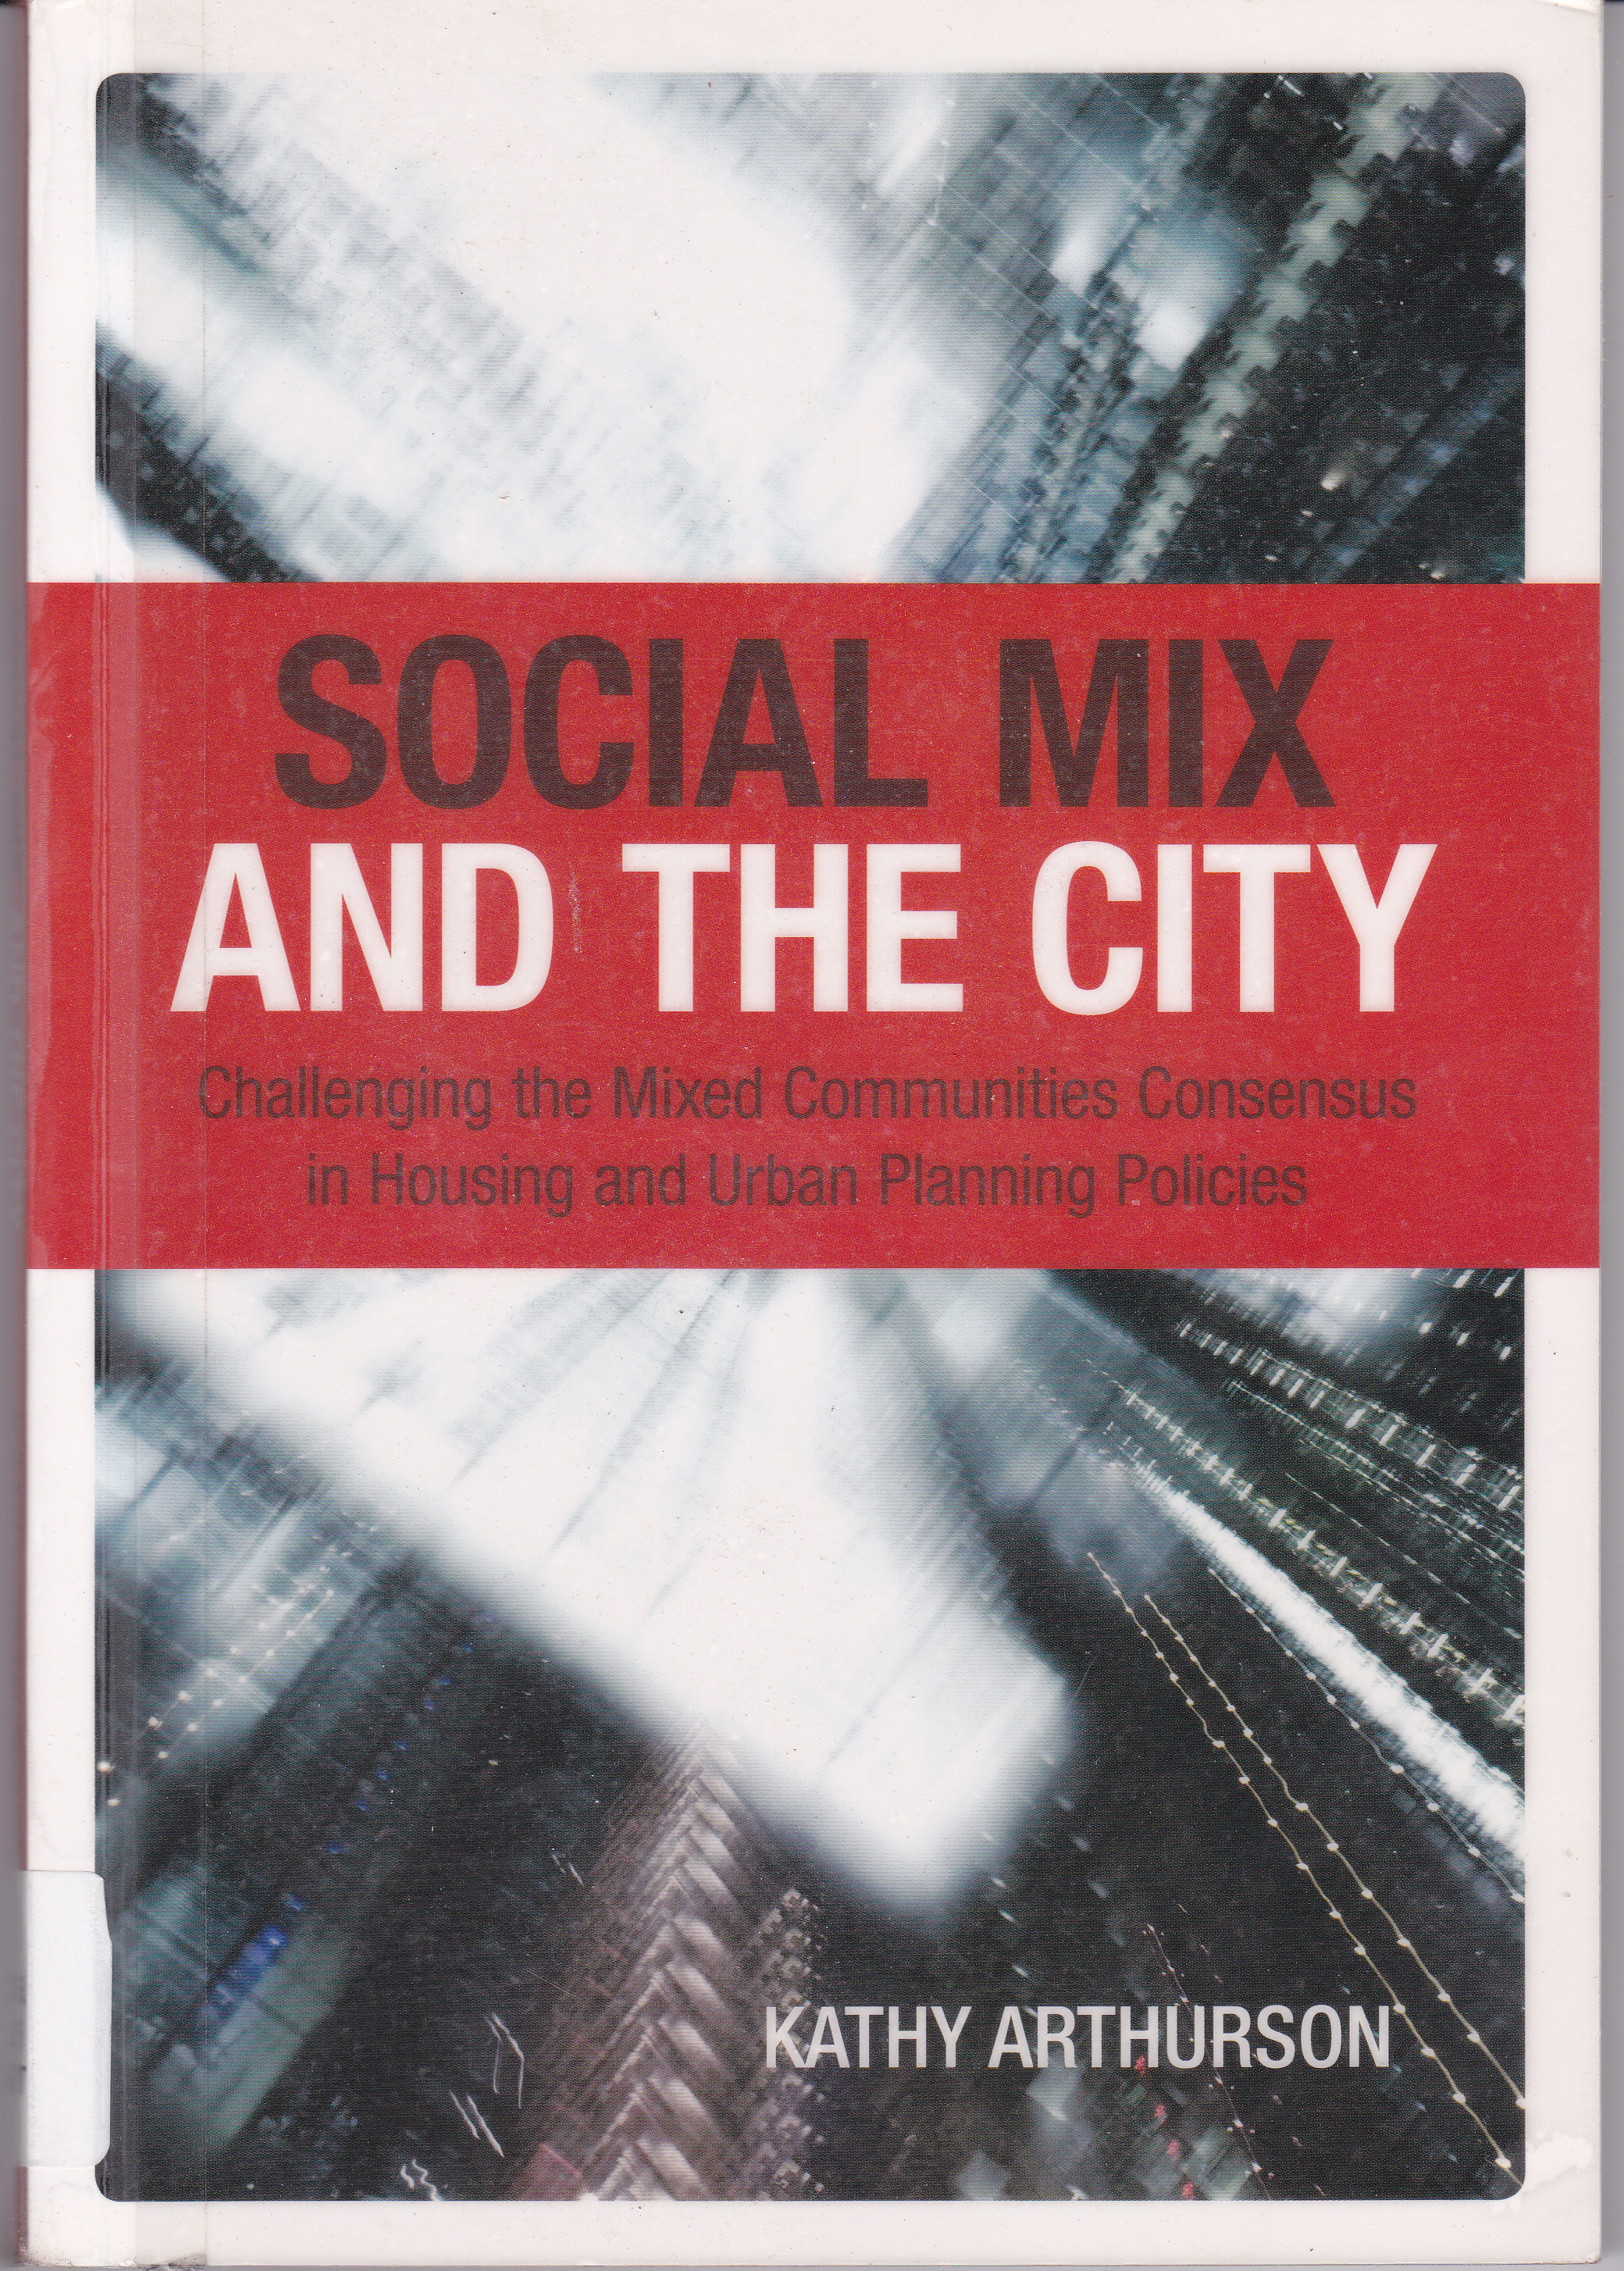 Social Mix and the City